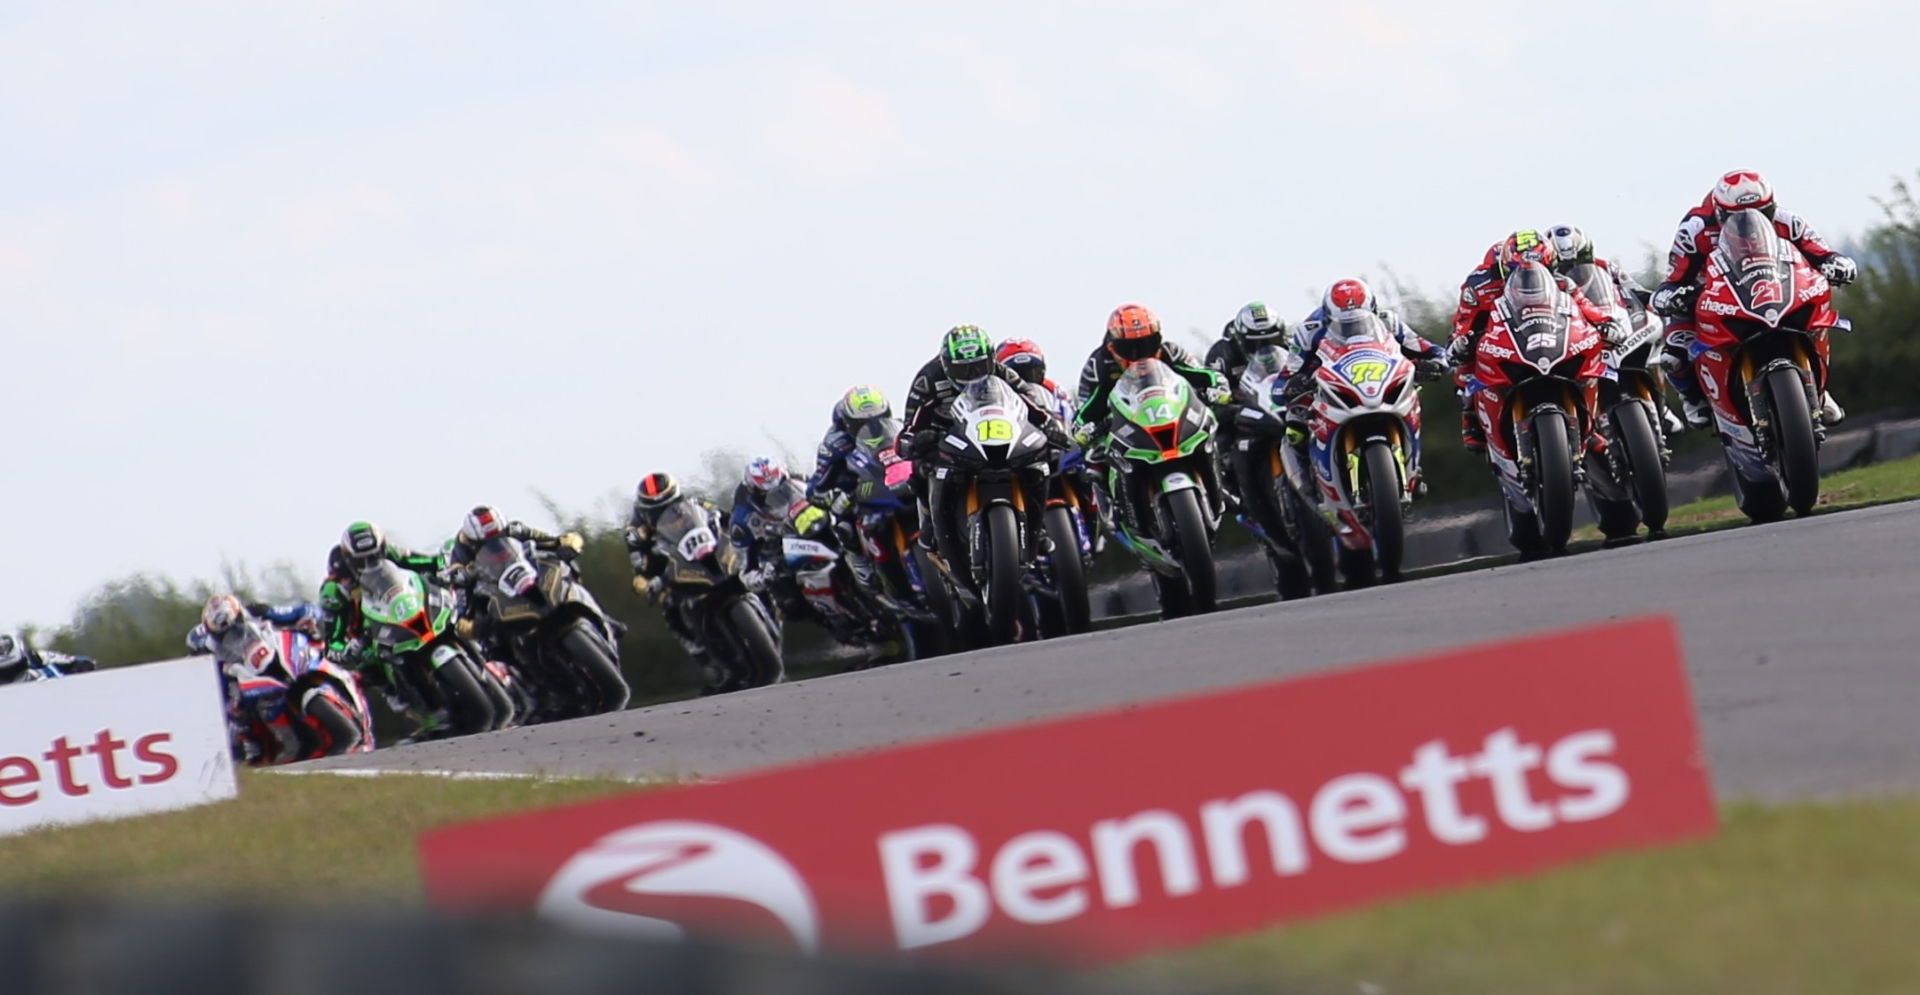 The British Superbike Championship is racing at Snetterton this coming weekend, Sept. 3-5. Photo courtesy MSVR.